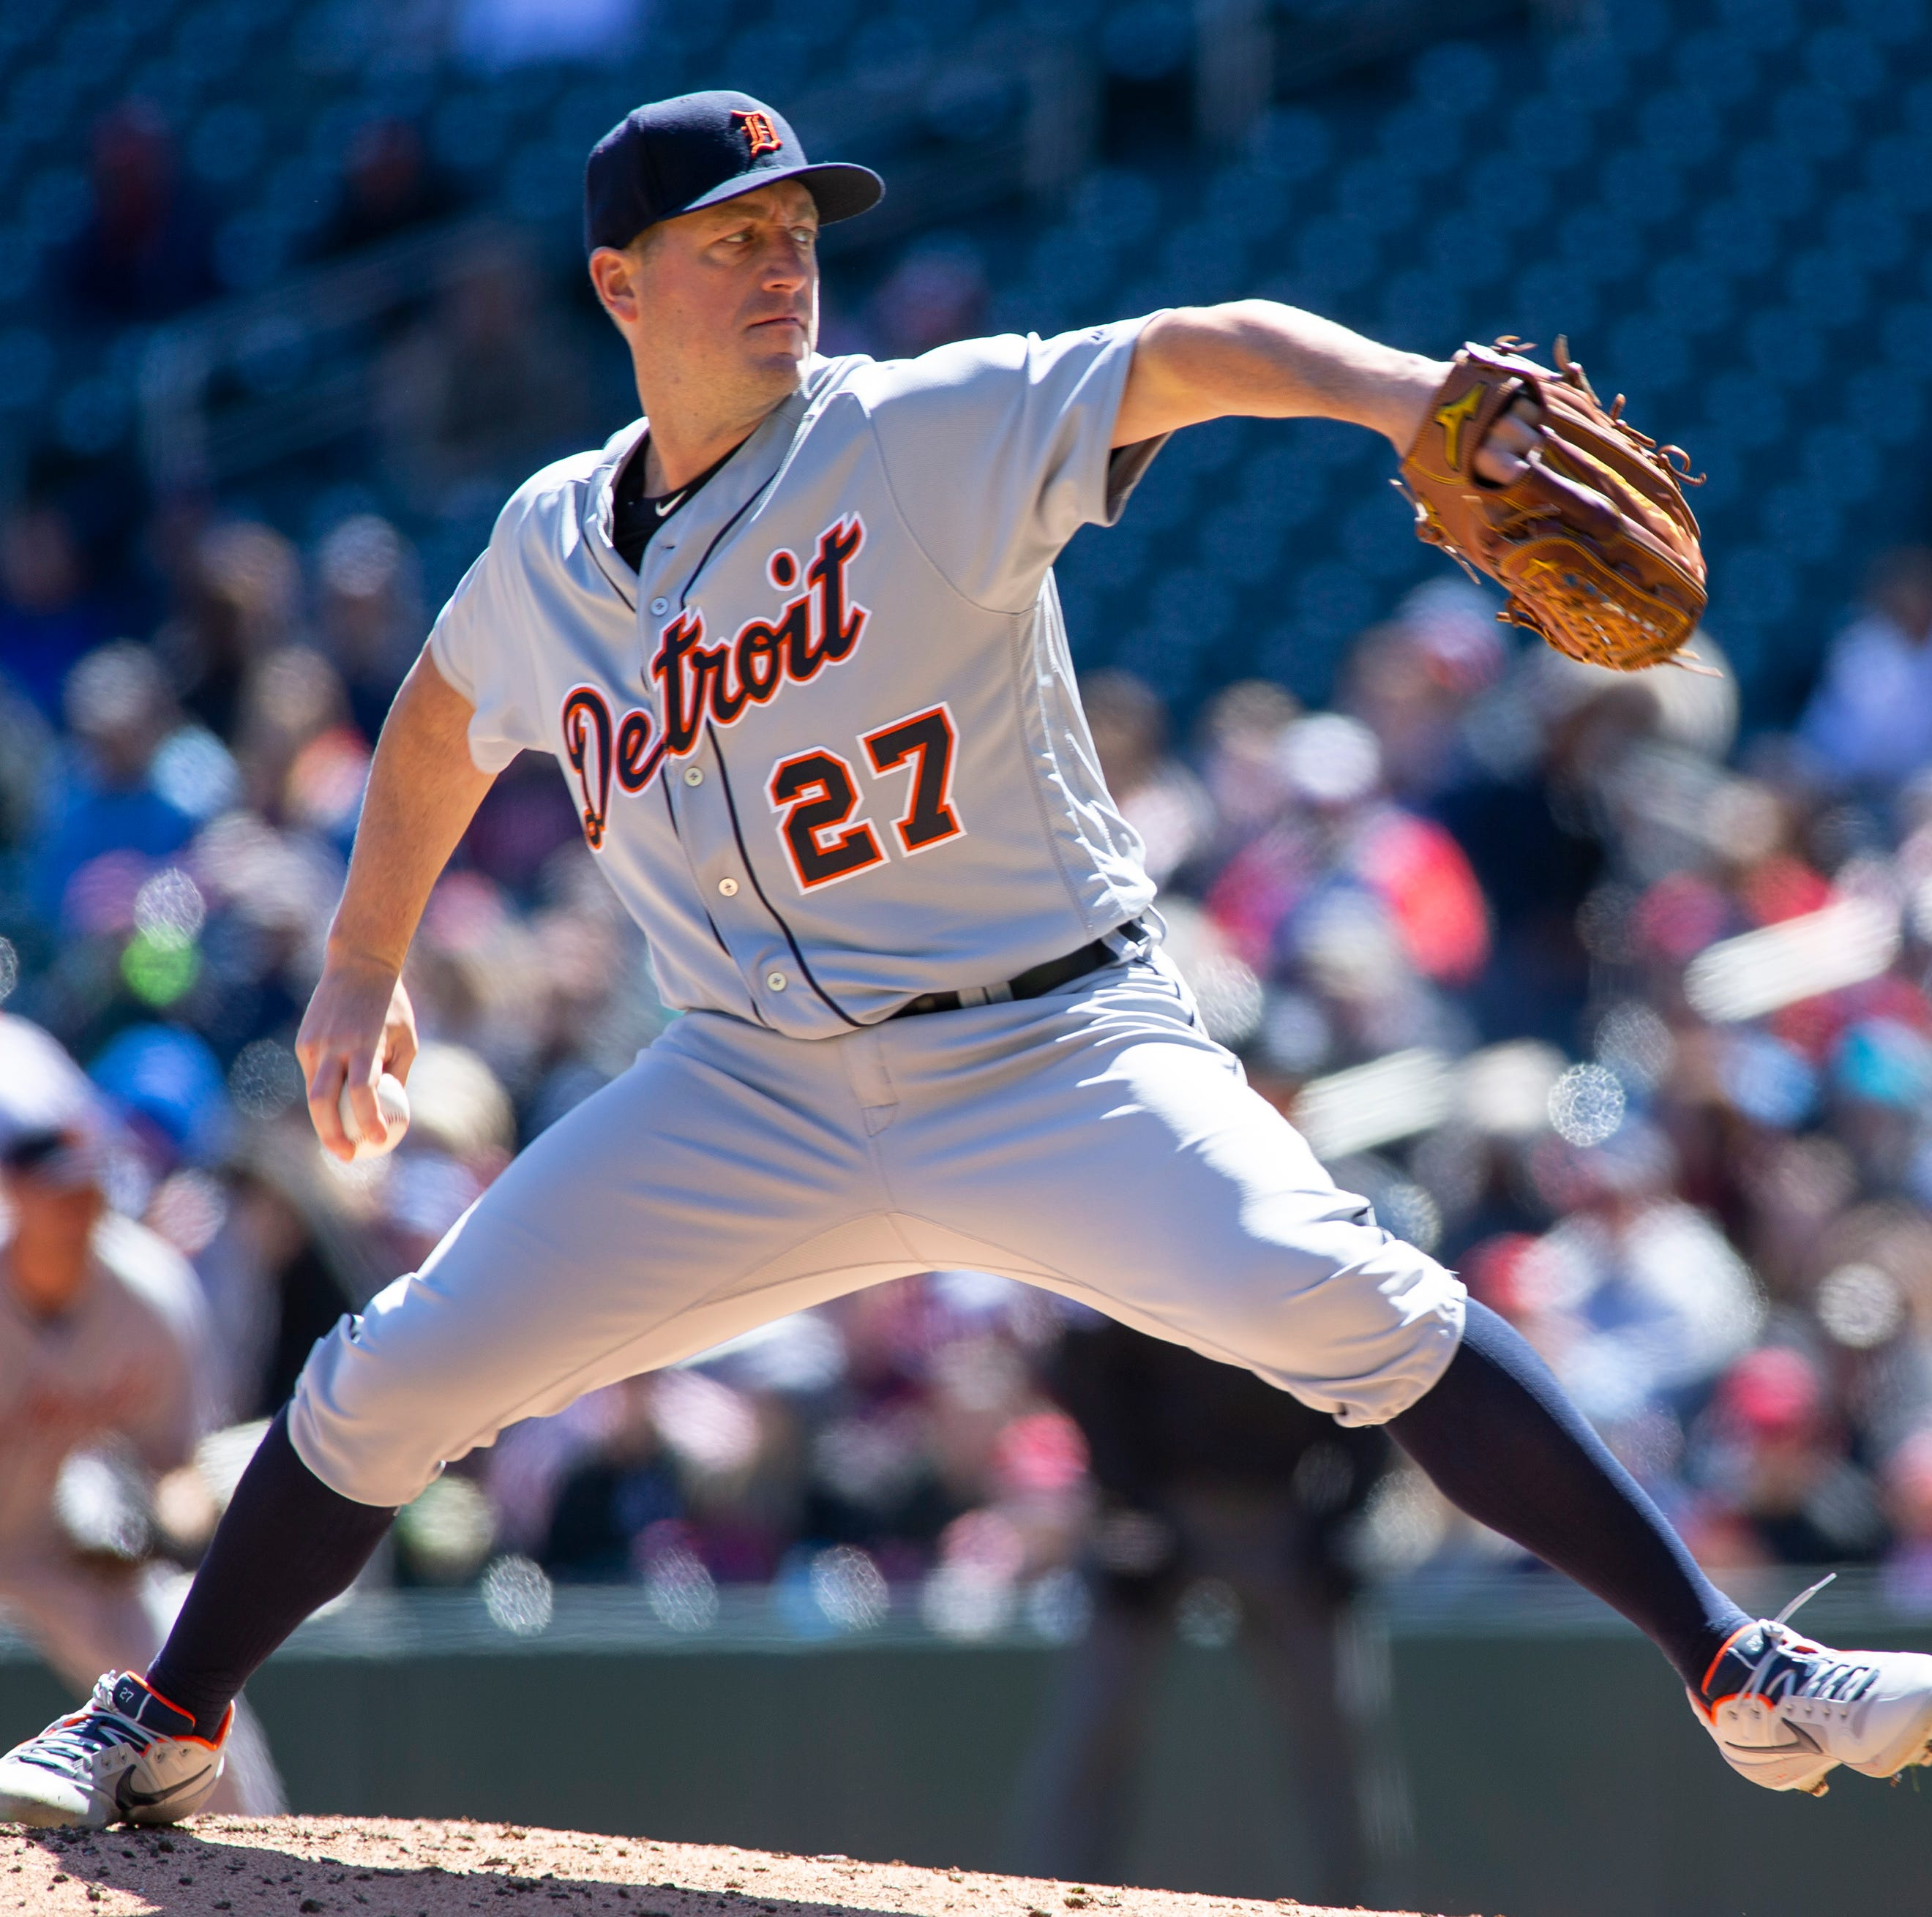 Tigers' late charge snuffed vs. Twins as losing skid hits 3